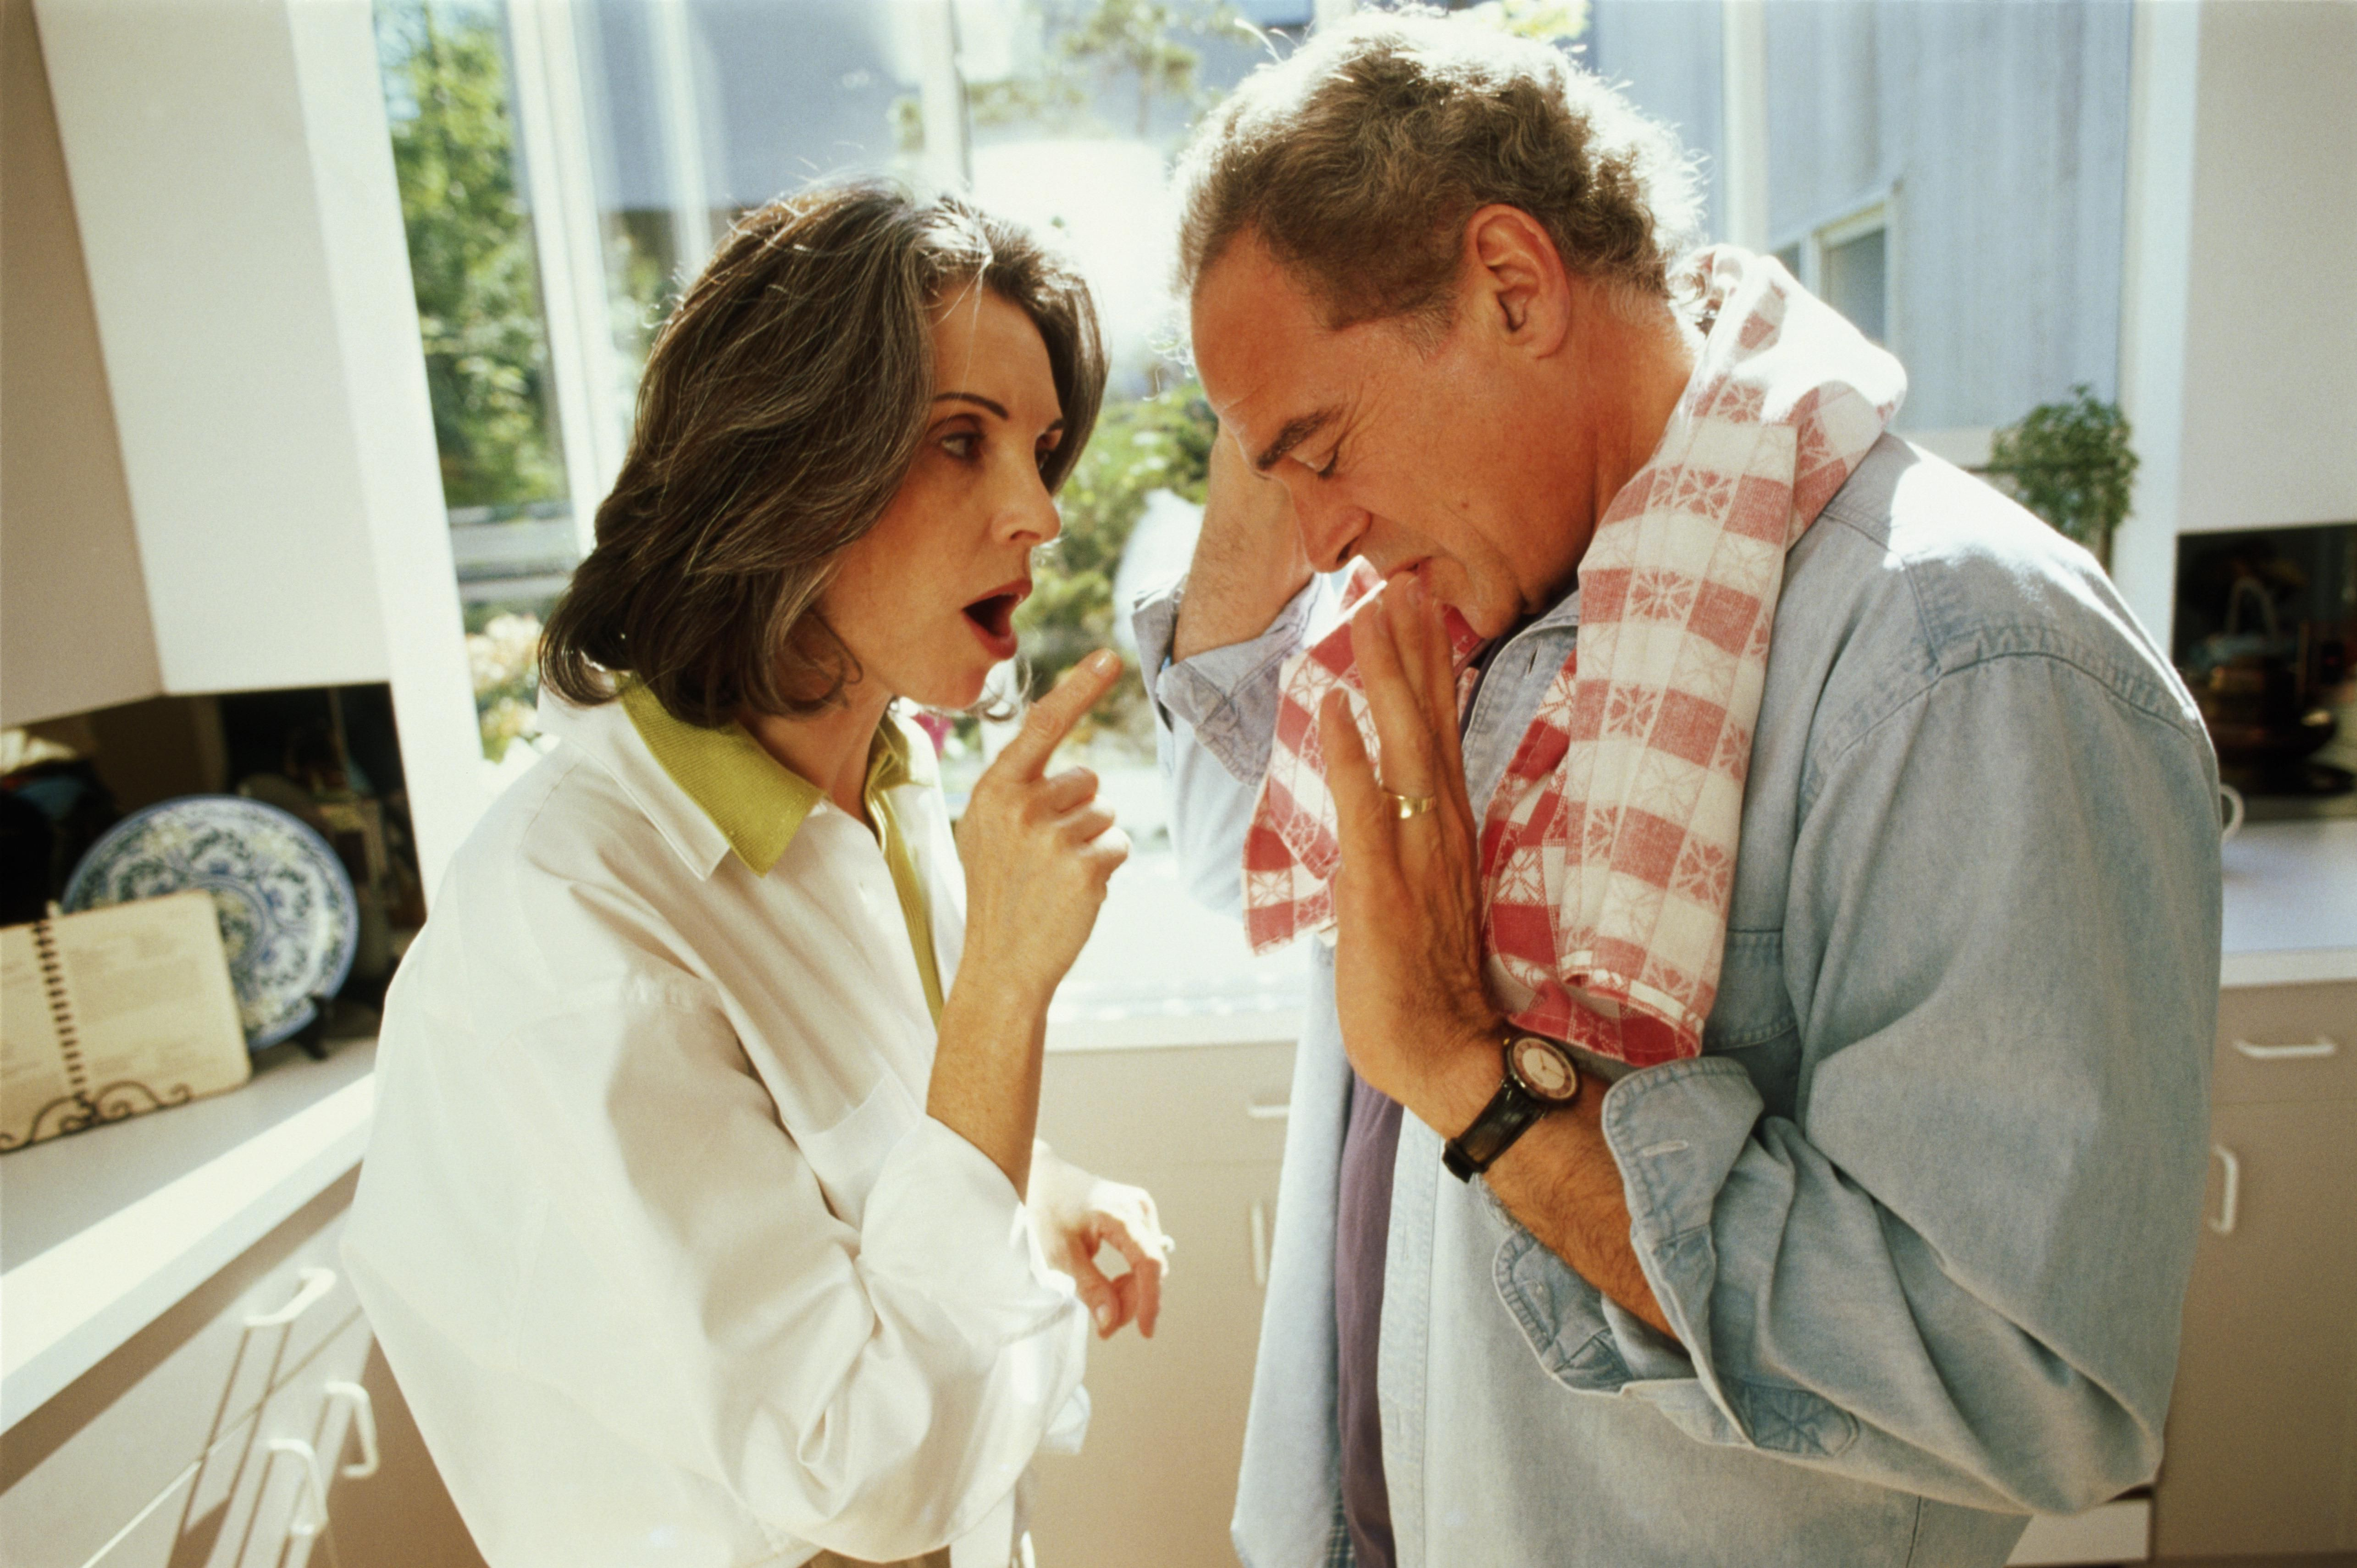 Learn to Take Control During Your Spouses Midlife Crisis